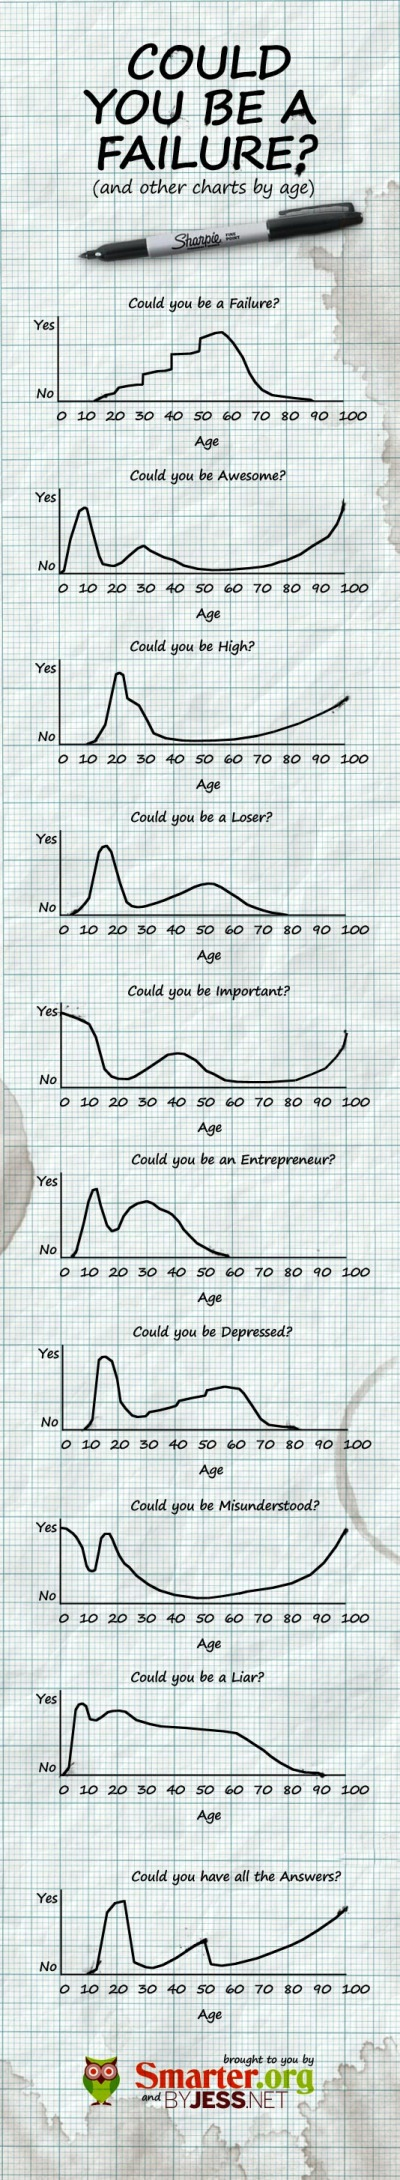 Could You Be a Failure? infographic